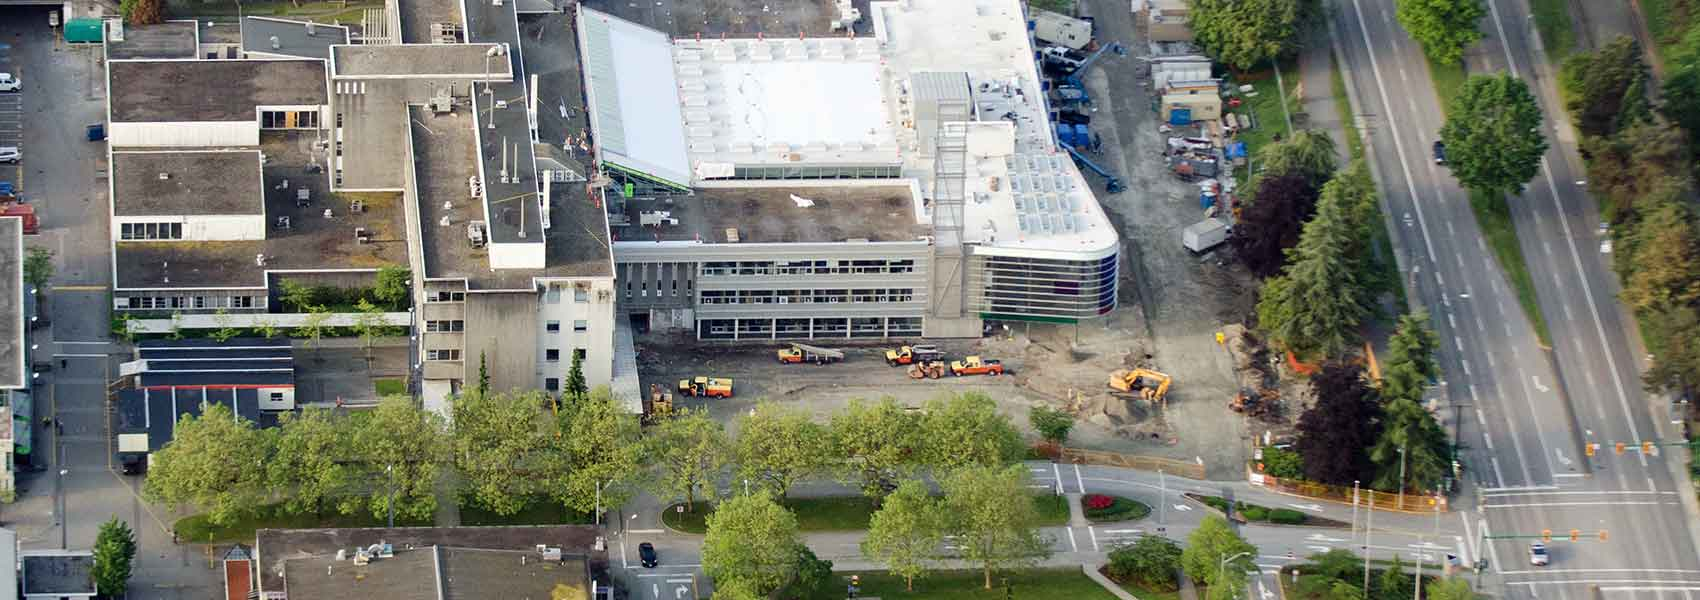 Aerial view of the Gateway building (SW-01) under construction.